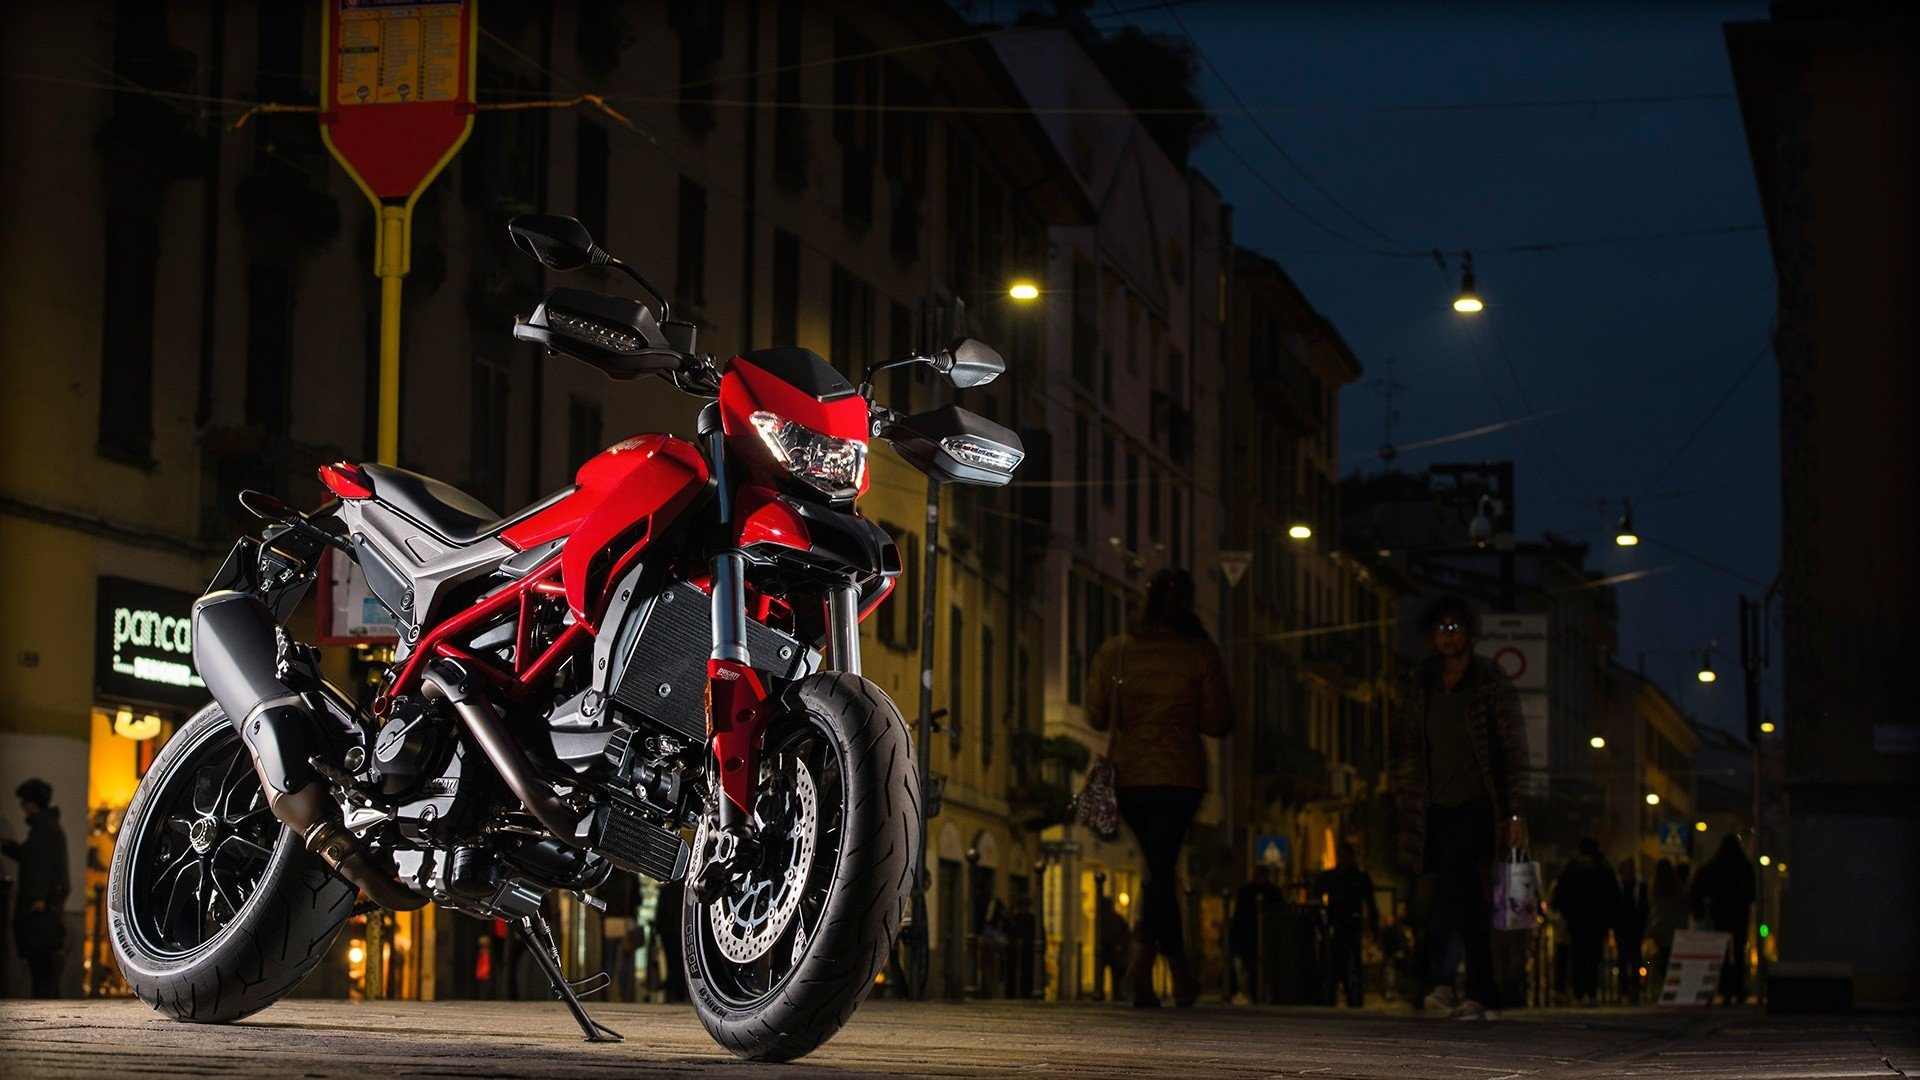 2016 Ducati Hypermotard 939 in Northampton, Massachusetts